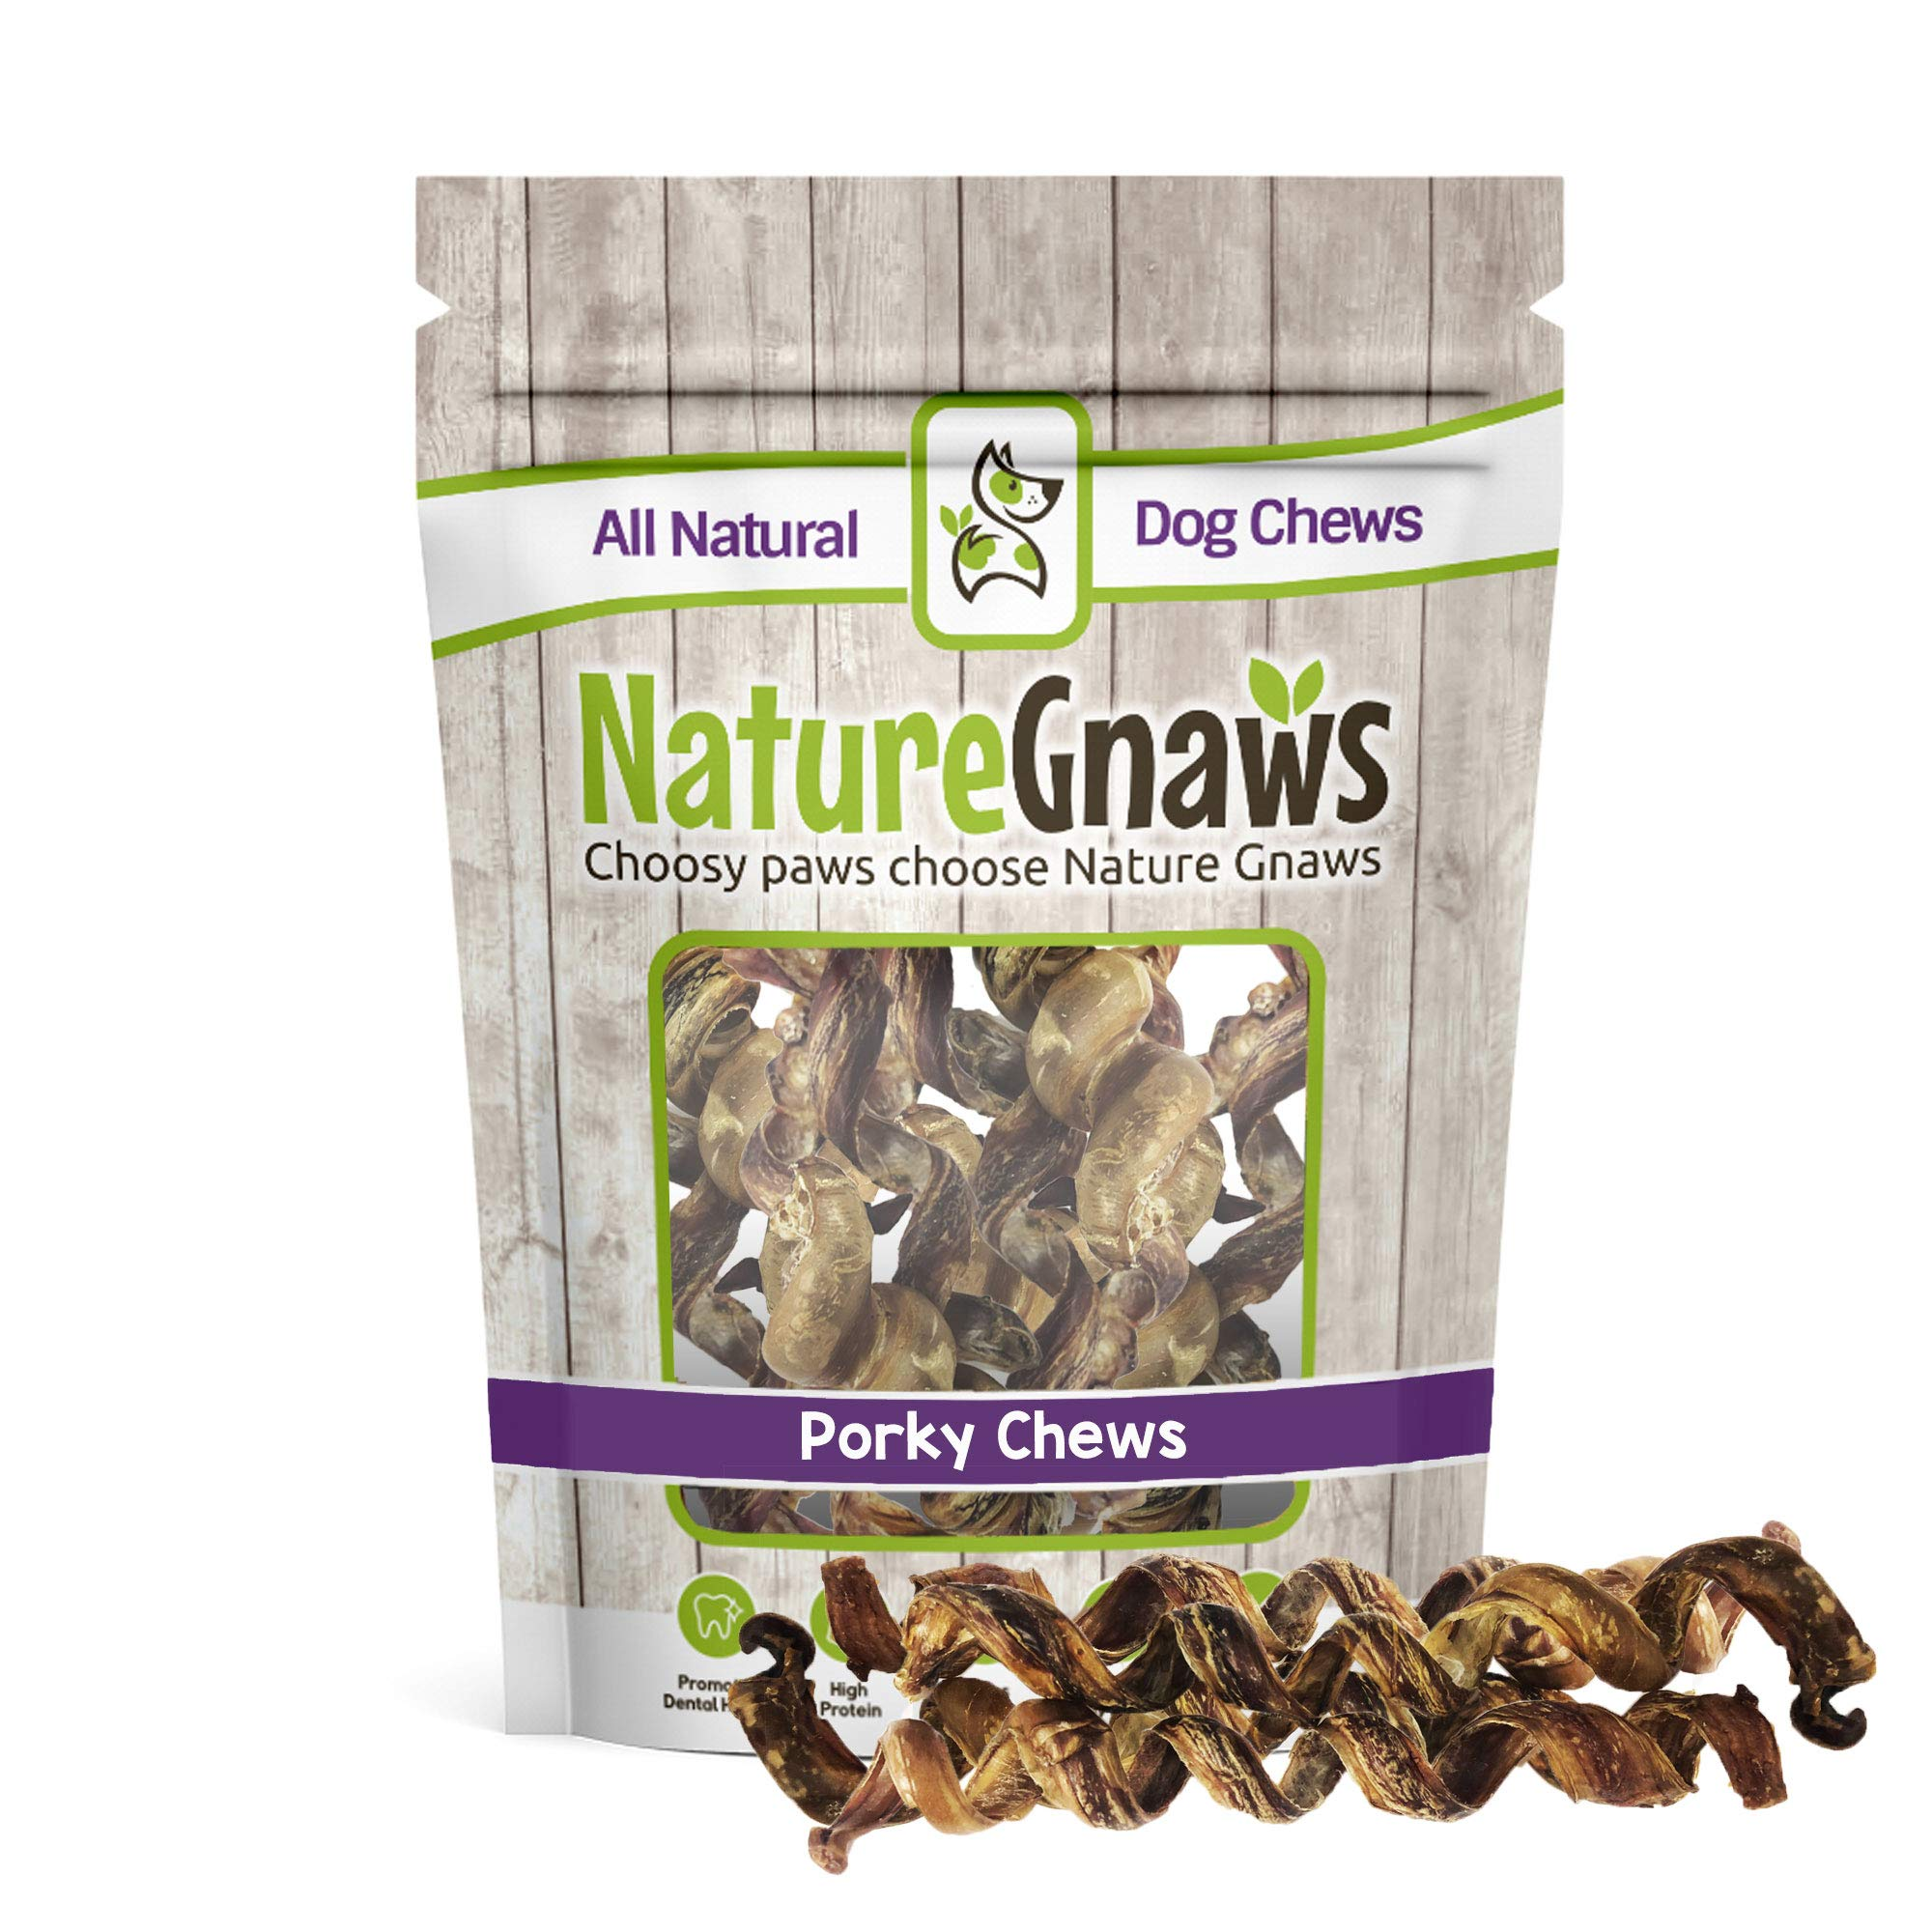 Nature Gnaws Porky Springs 7-8'' (12 Pack) - 100% All-Natural Premium Dog Chews